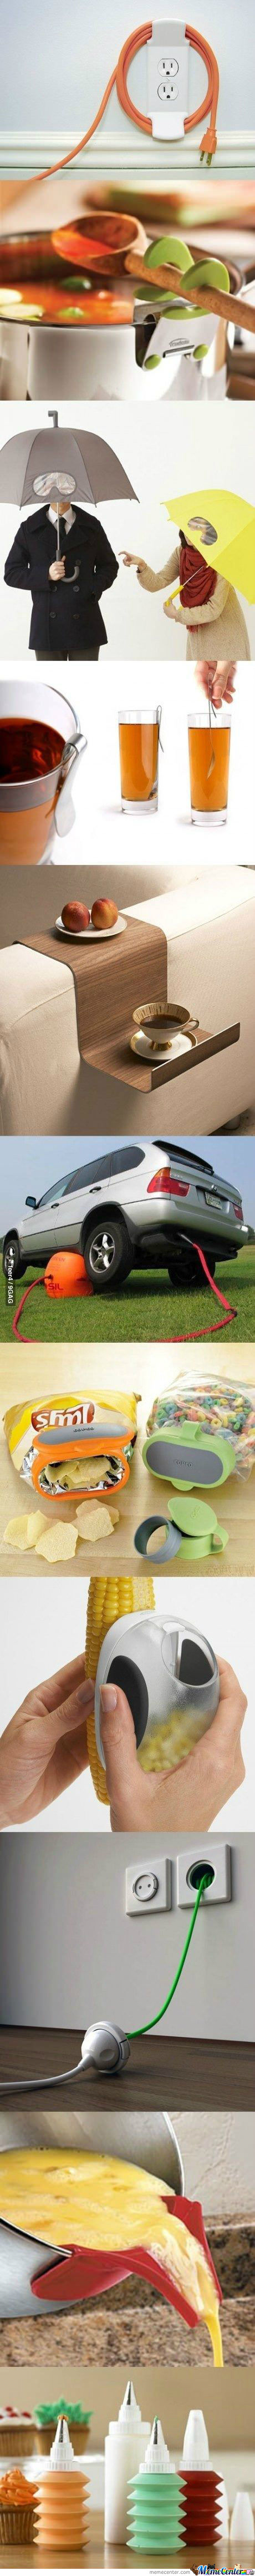 Inventions The World Needs